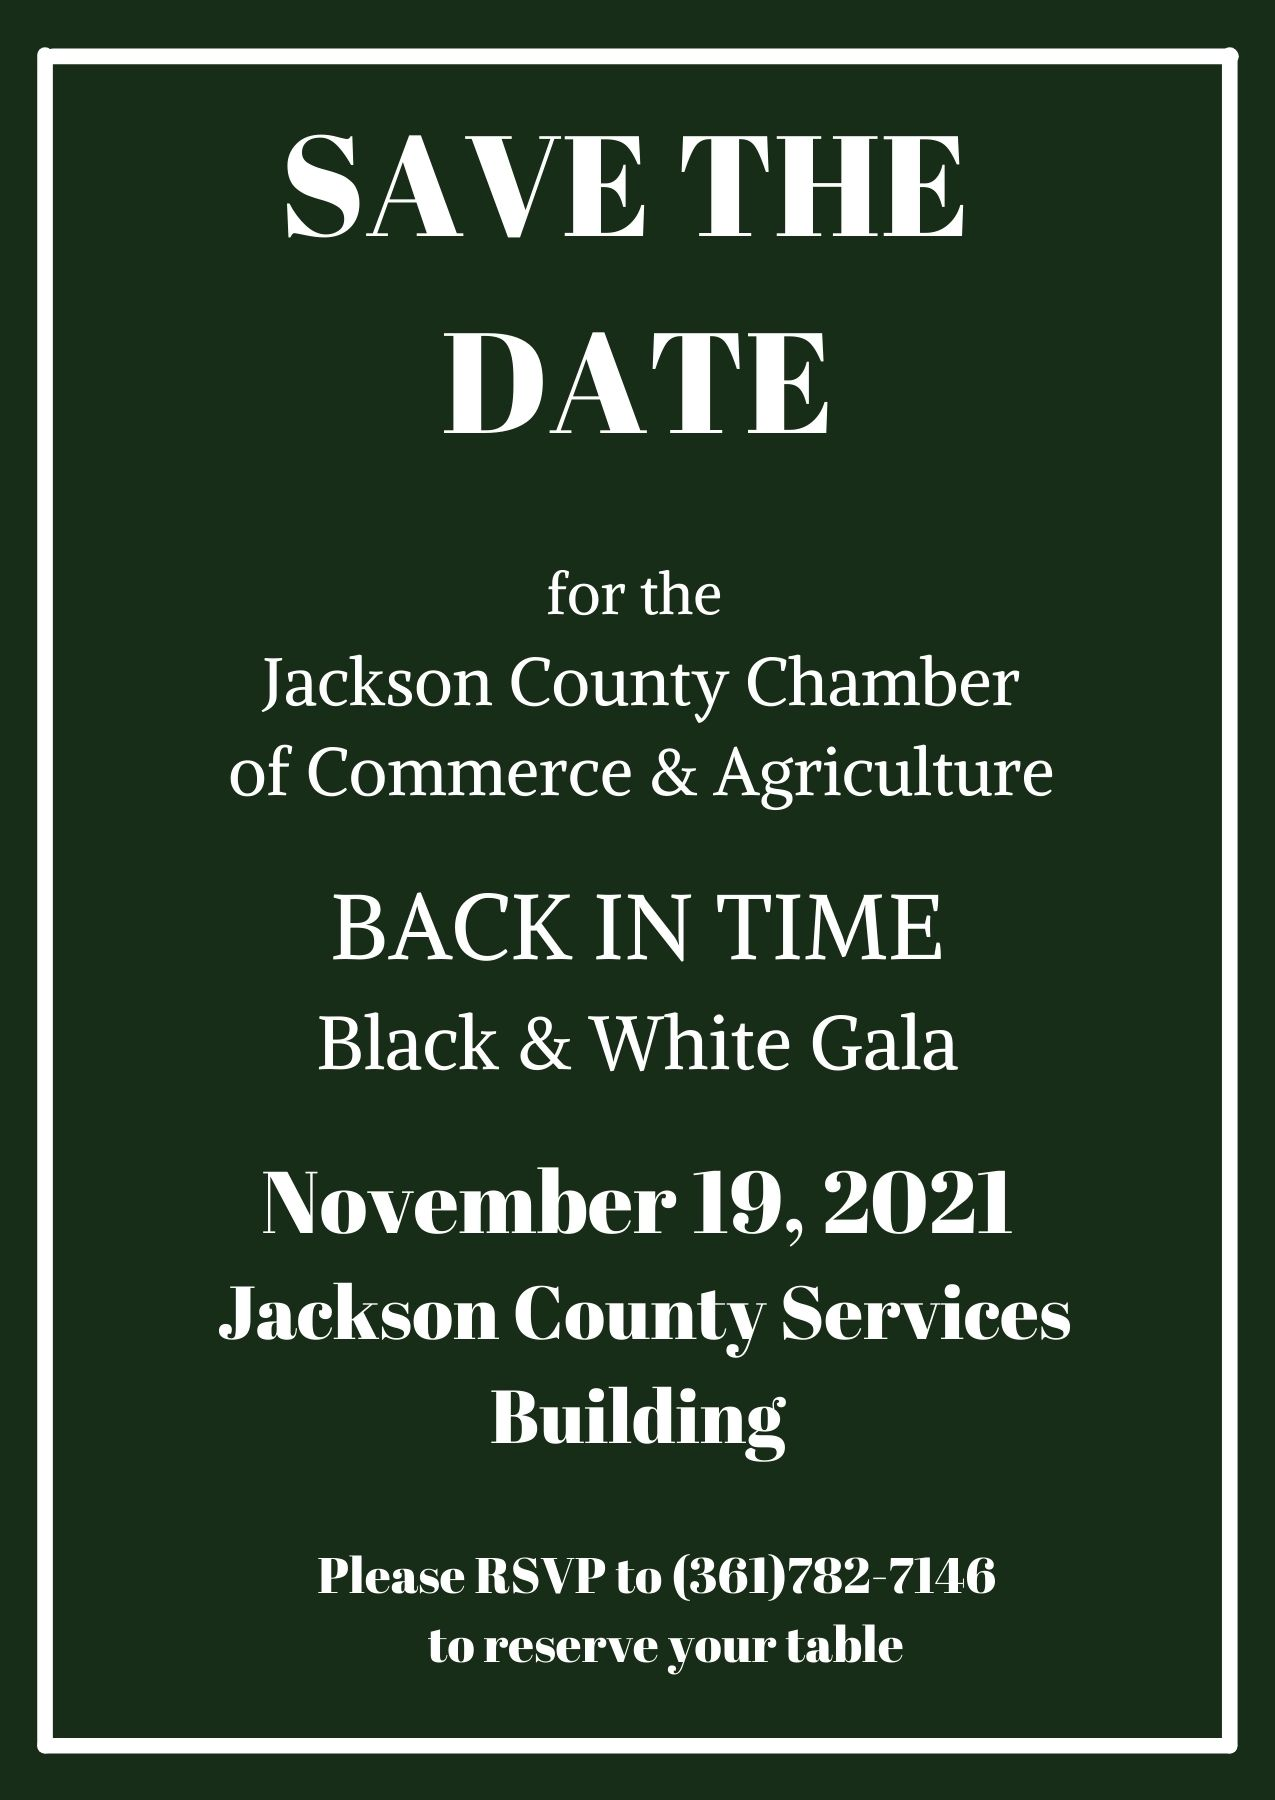 SAVE-THE-DATE-2021.jpg